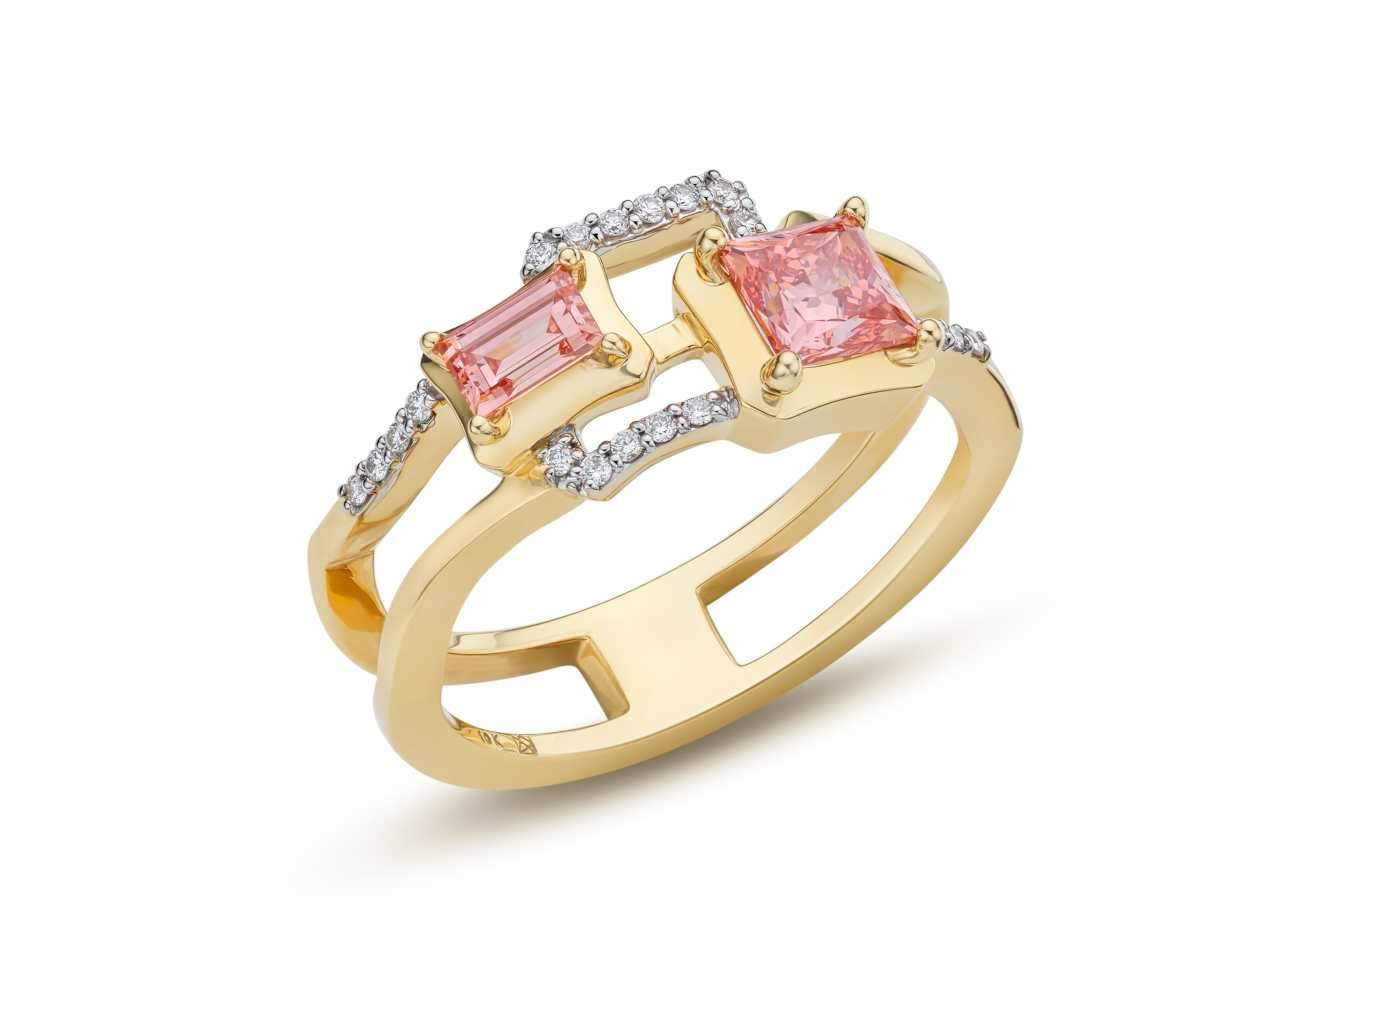 Side view of 2 Stone Frame work Ring with pink and white diamonds